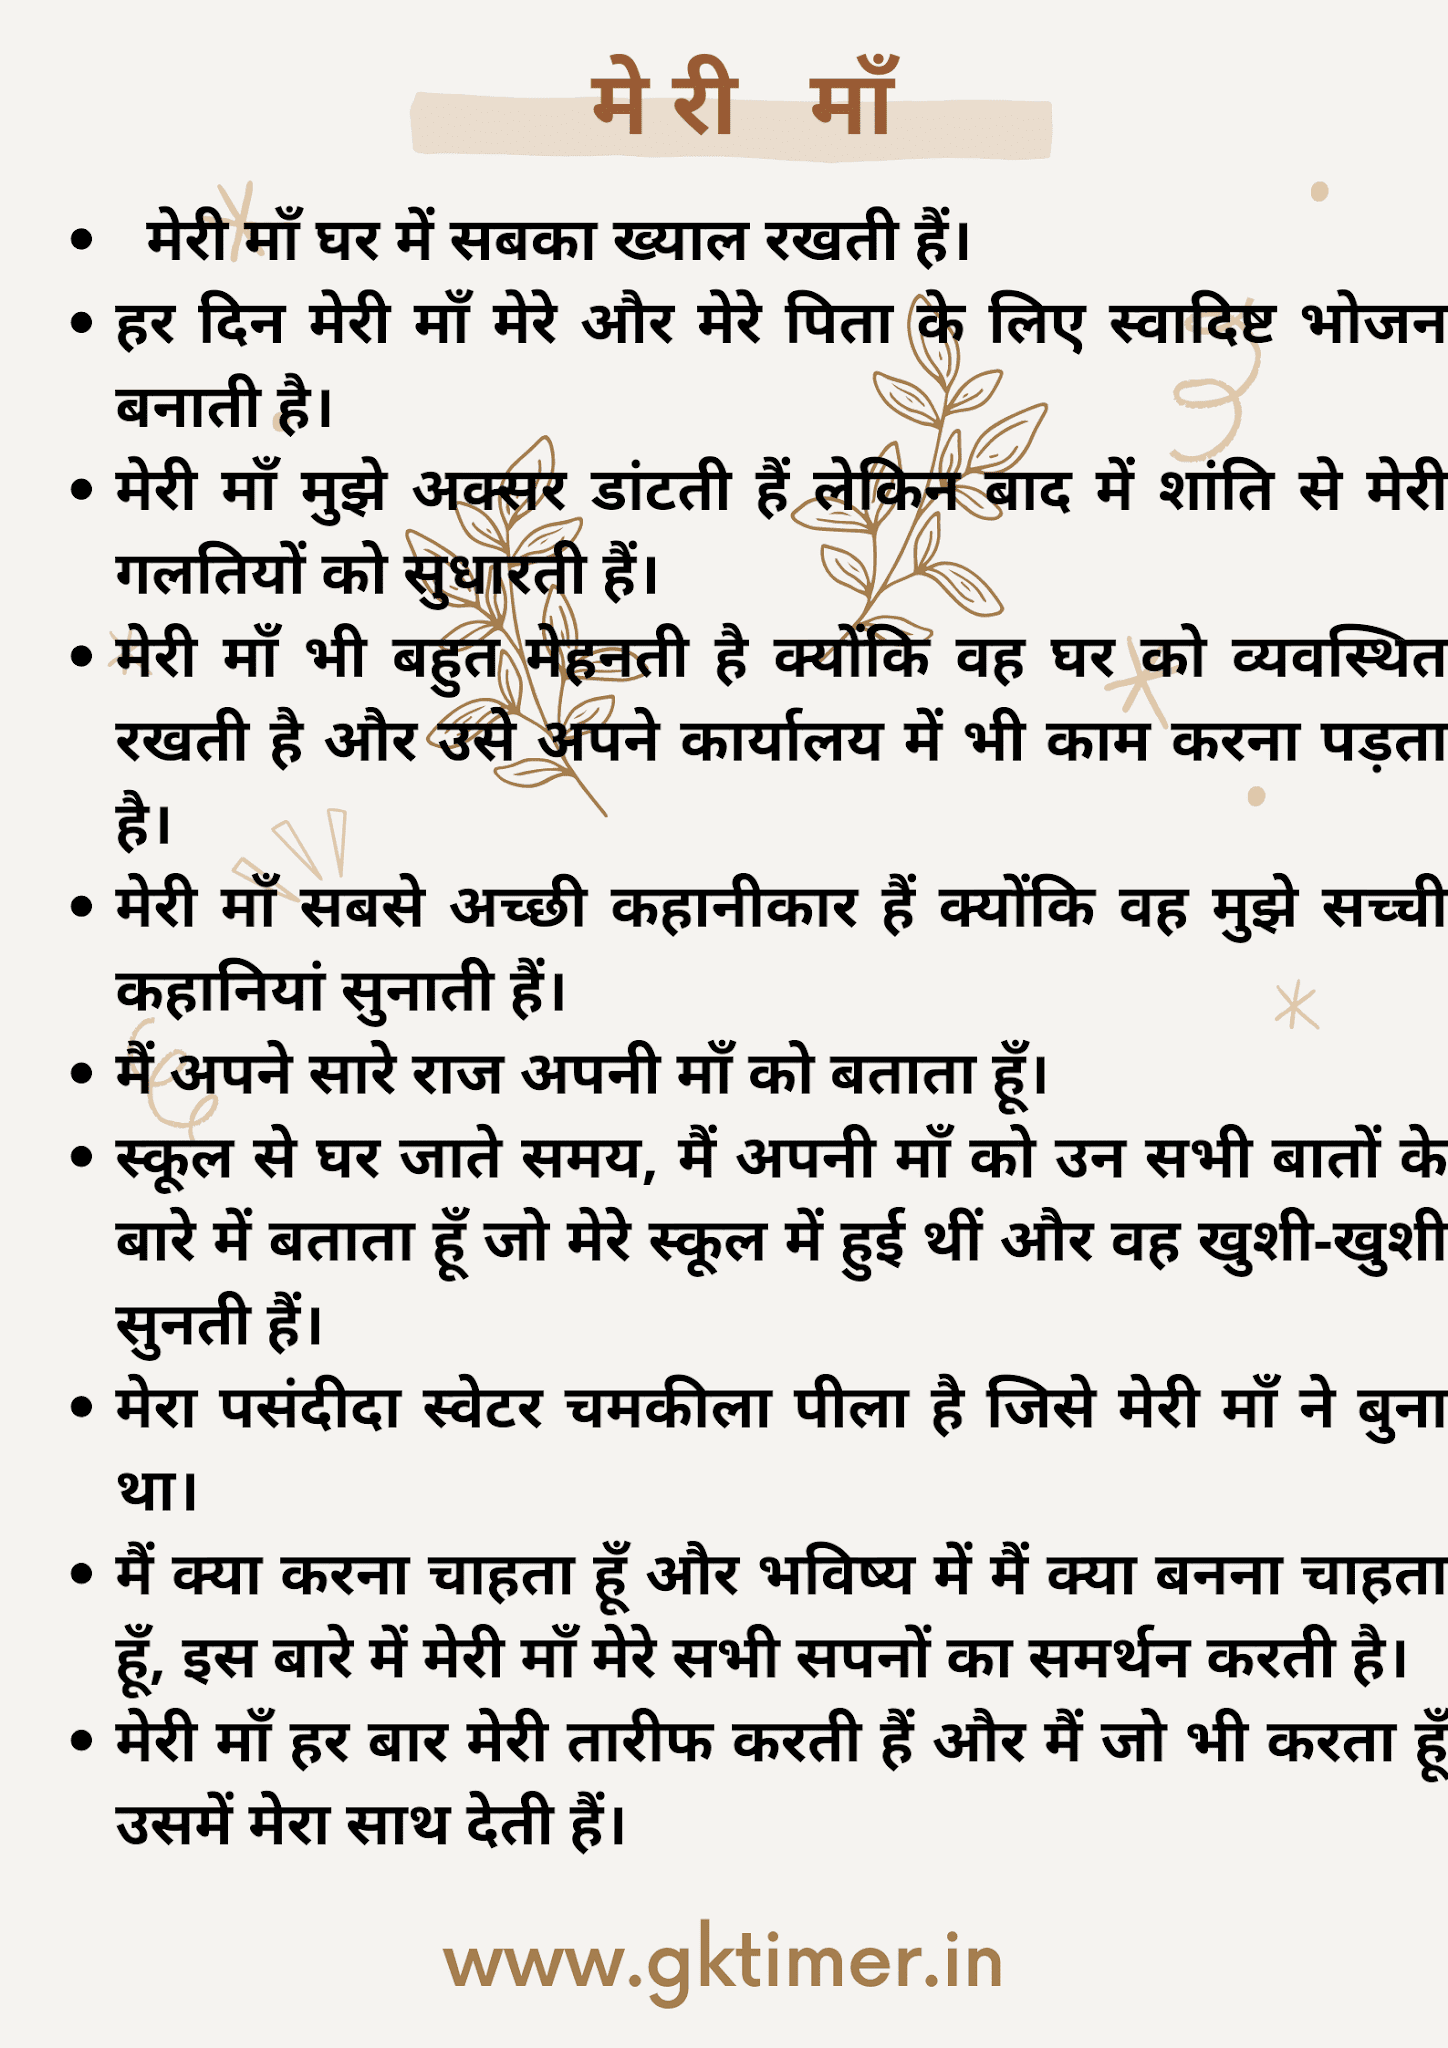 मेरी माँ पर निबंध | Essay on My Mother in Hindi | 10 Lines on My Mother in Hindi